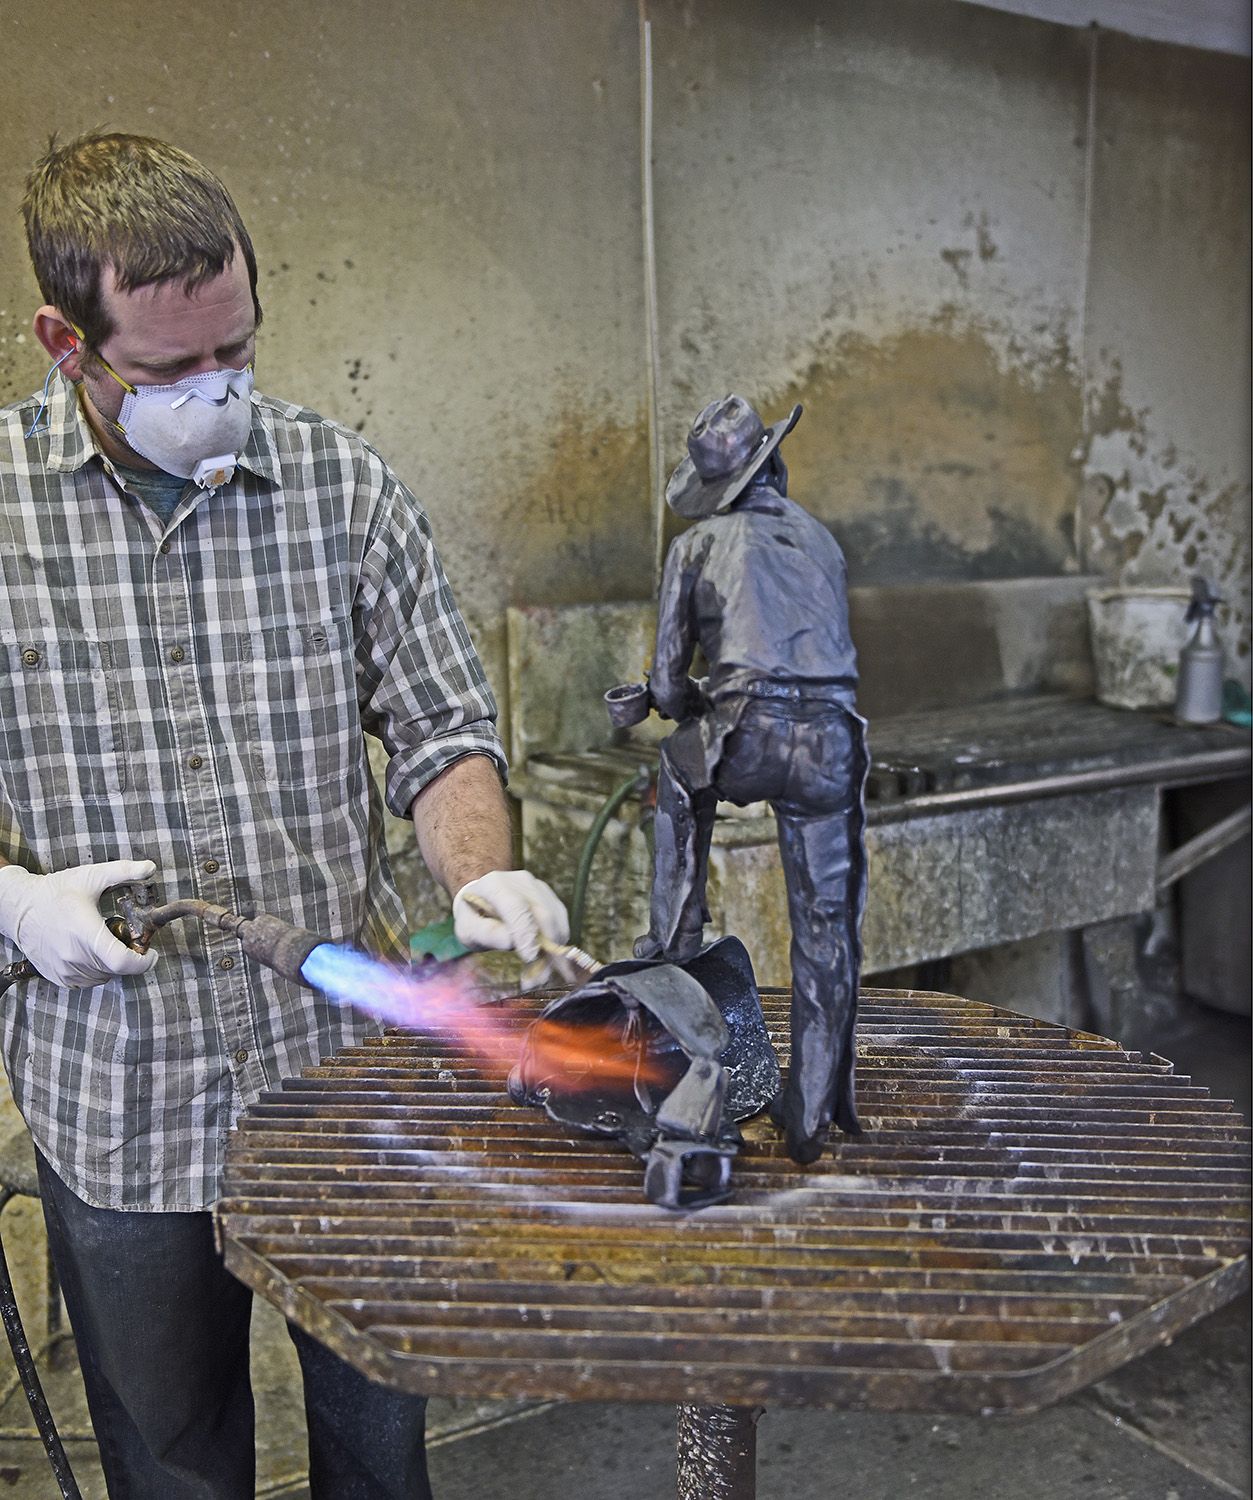 """Colour at last: - The last stage is where the final finish, or """"patina"""", is applied by burning pigment into the surface of the bronze. Here is where colour and shading can be applied. It is the last stage before the finished bronze is mounted onto a base."""